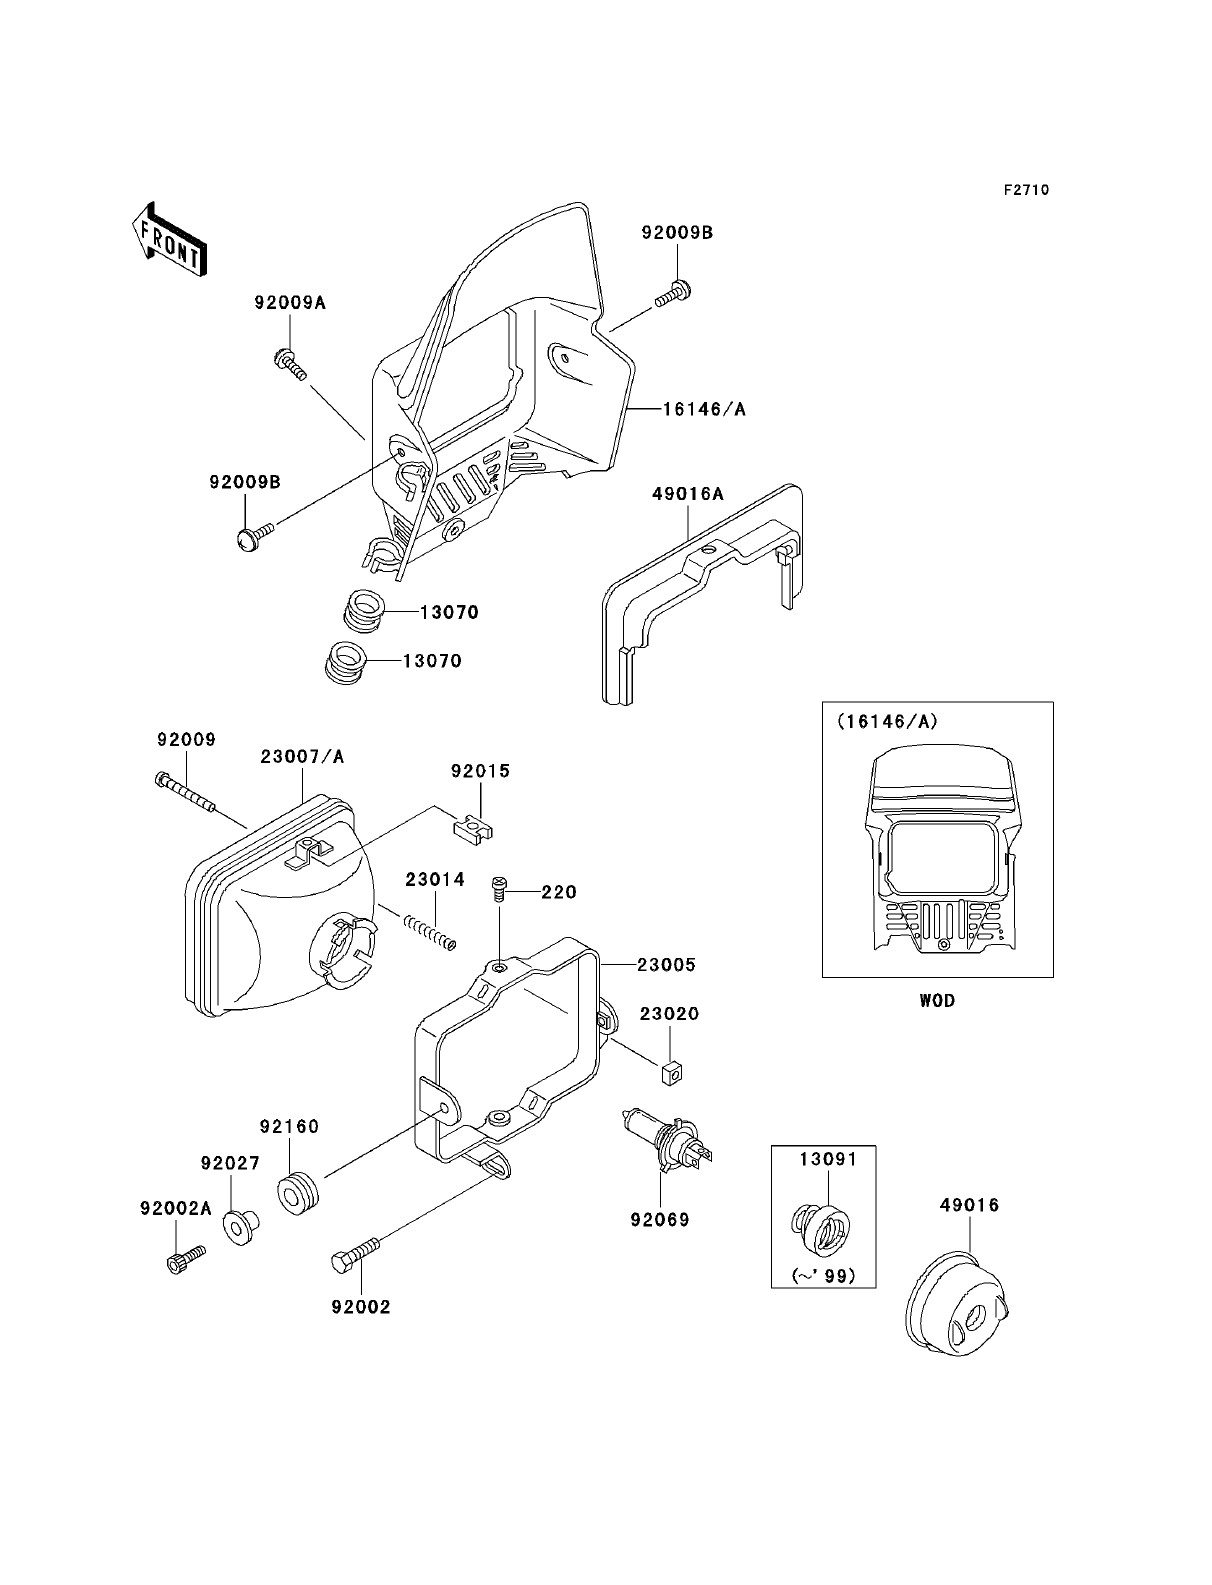 Master Cylinder Parts Diagram Kawasaki Klr250 Kawasaki Klr250 Parts Diagrams Of Master Cylinder Parts Diagram Kawasaki Klr250 Kawasaki Klr250 Parts Diagrams